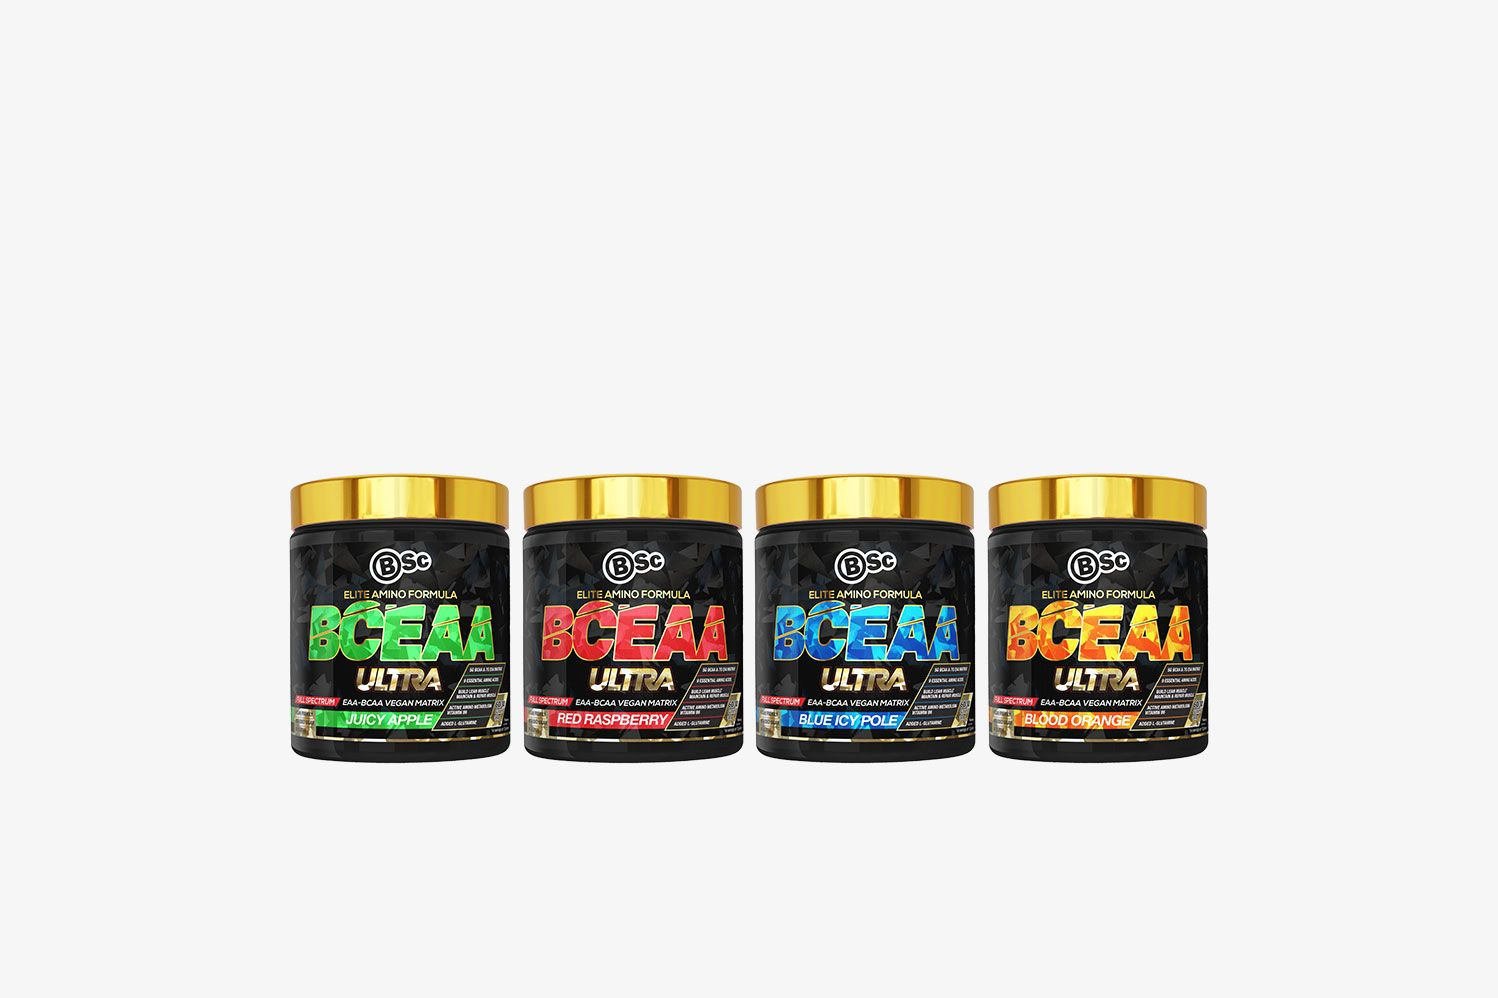 Let's chat about BCAAs